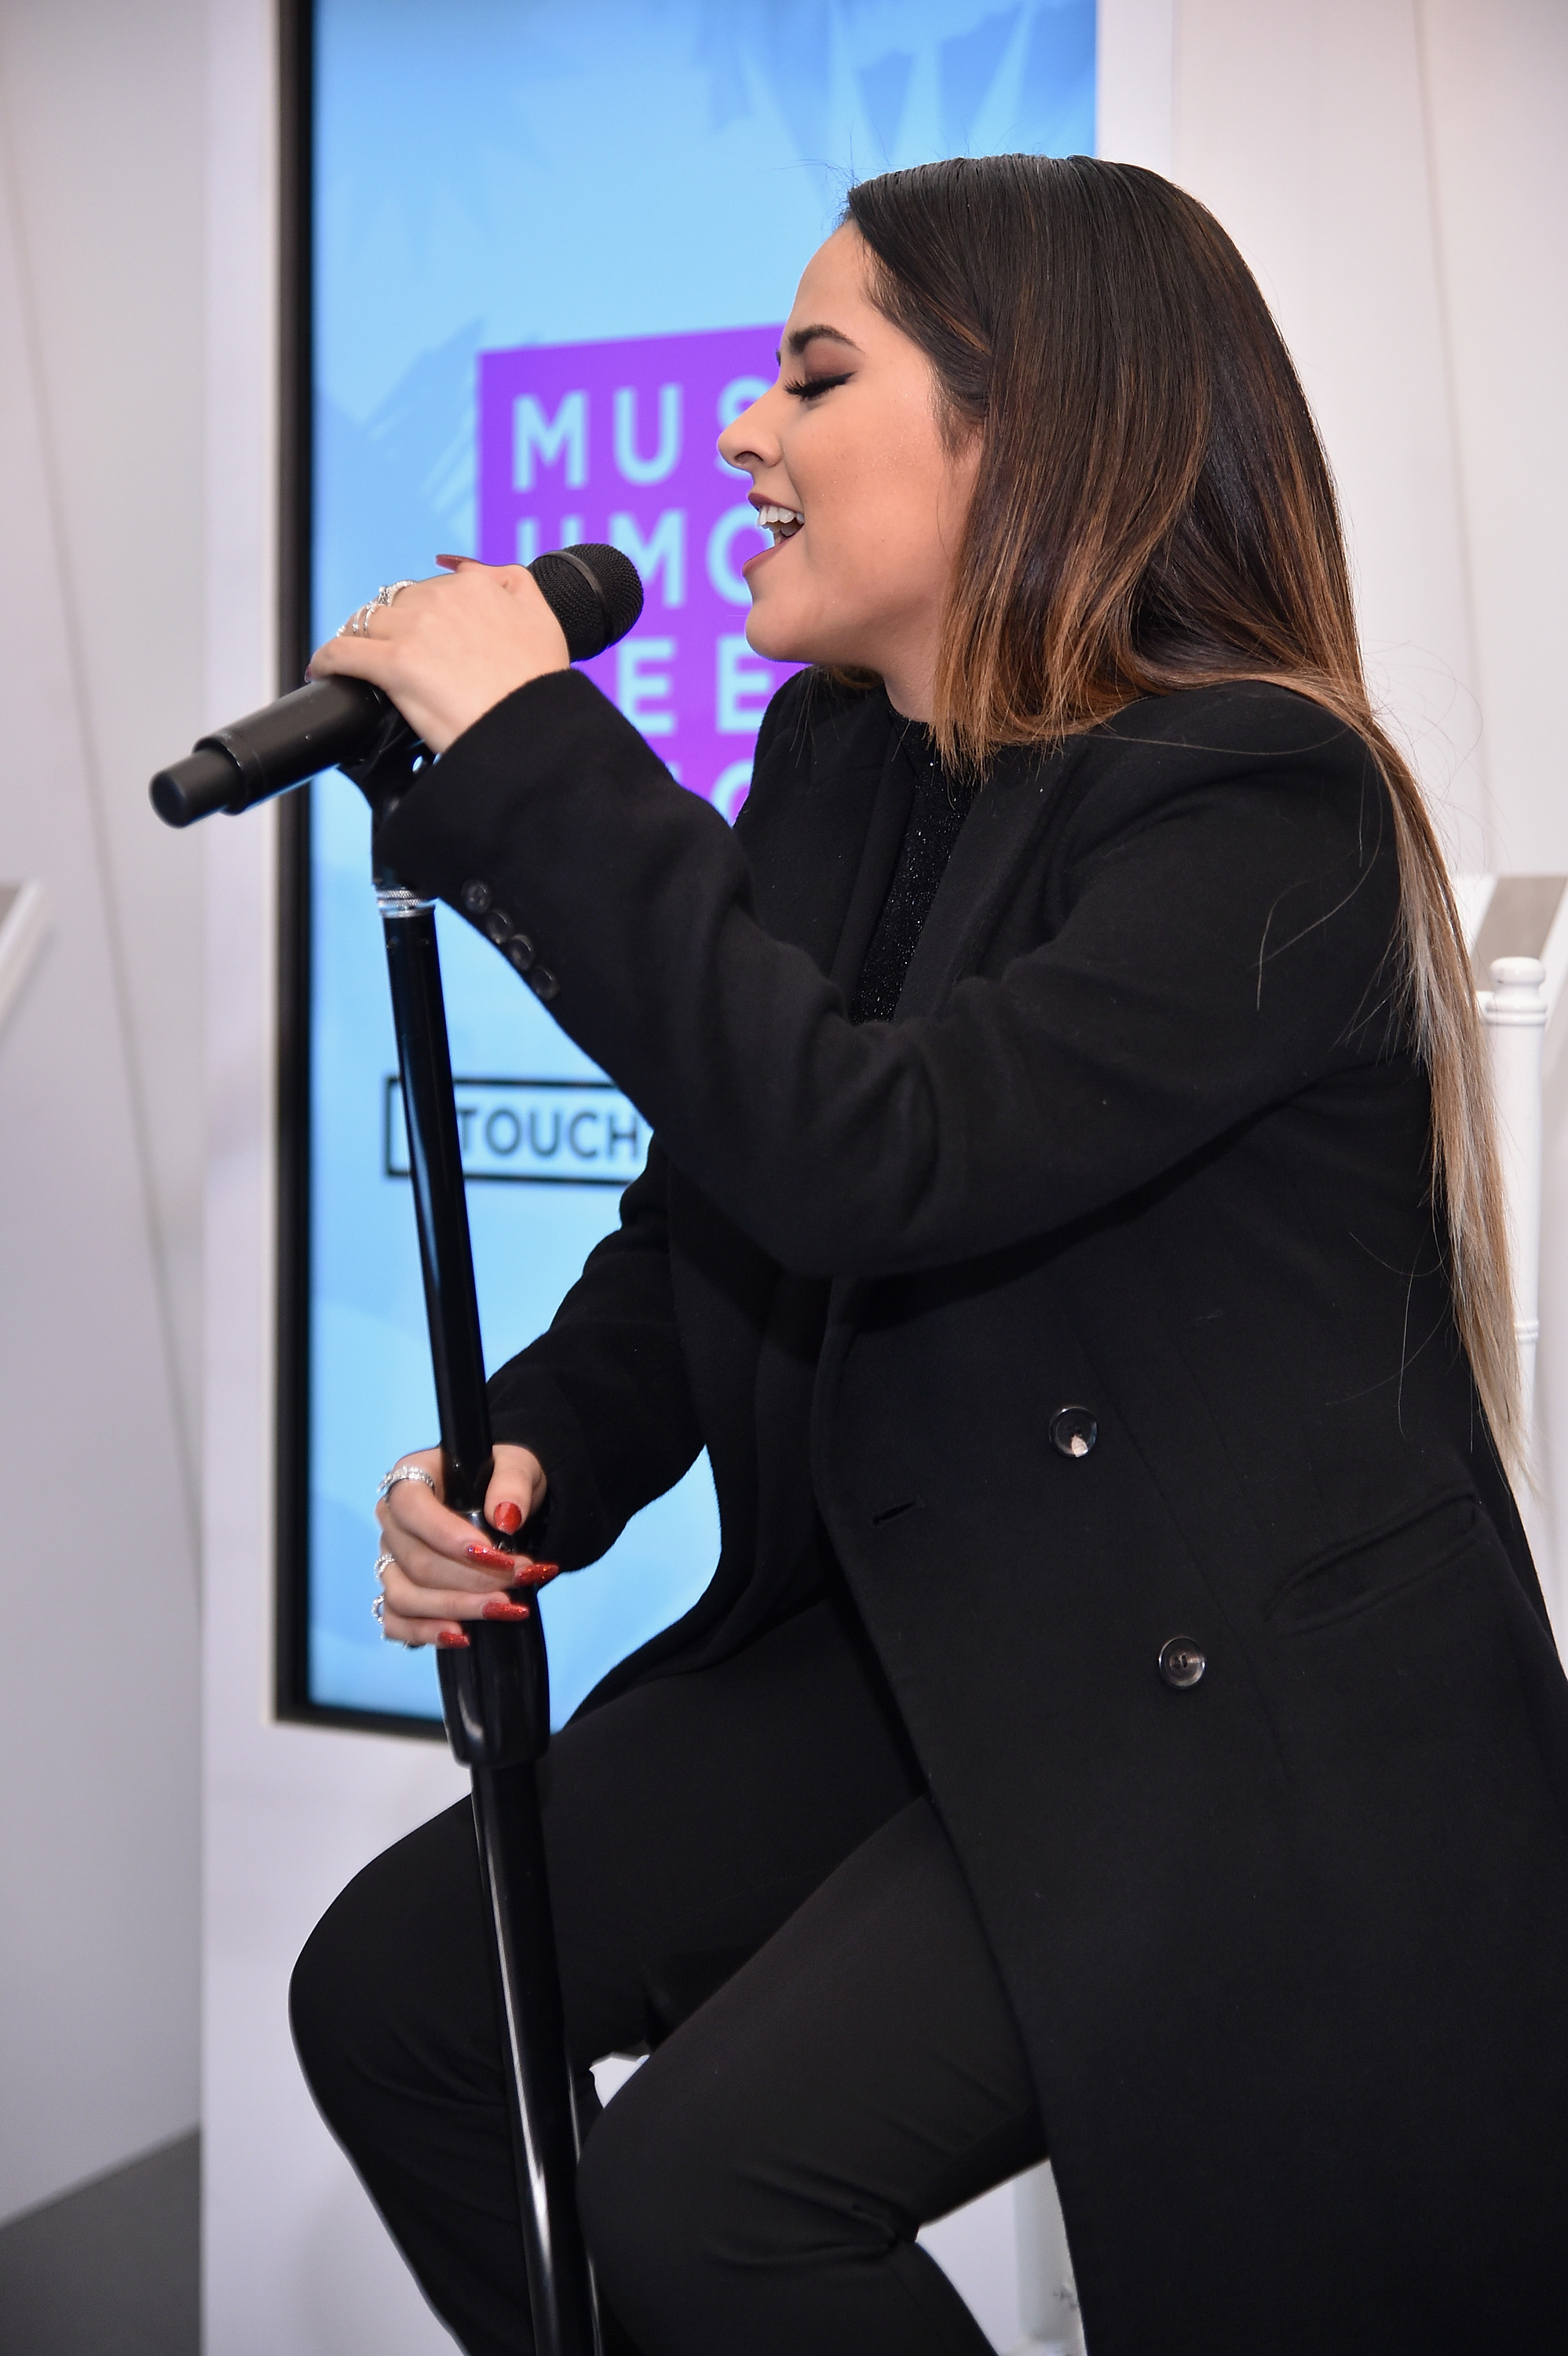 Becky G performs at the launch party of The Museum of Feelings, curated by Glade, at Brookfield Place in New York City on Nov. 23, 2015.